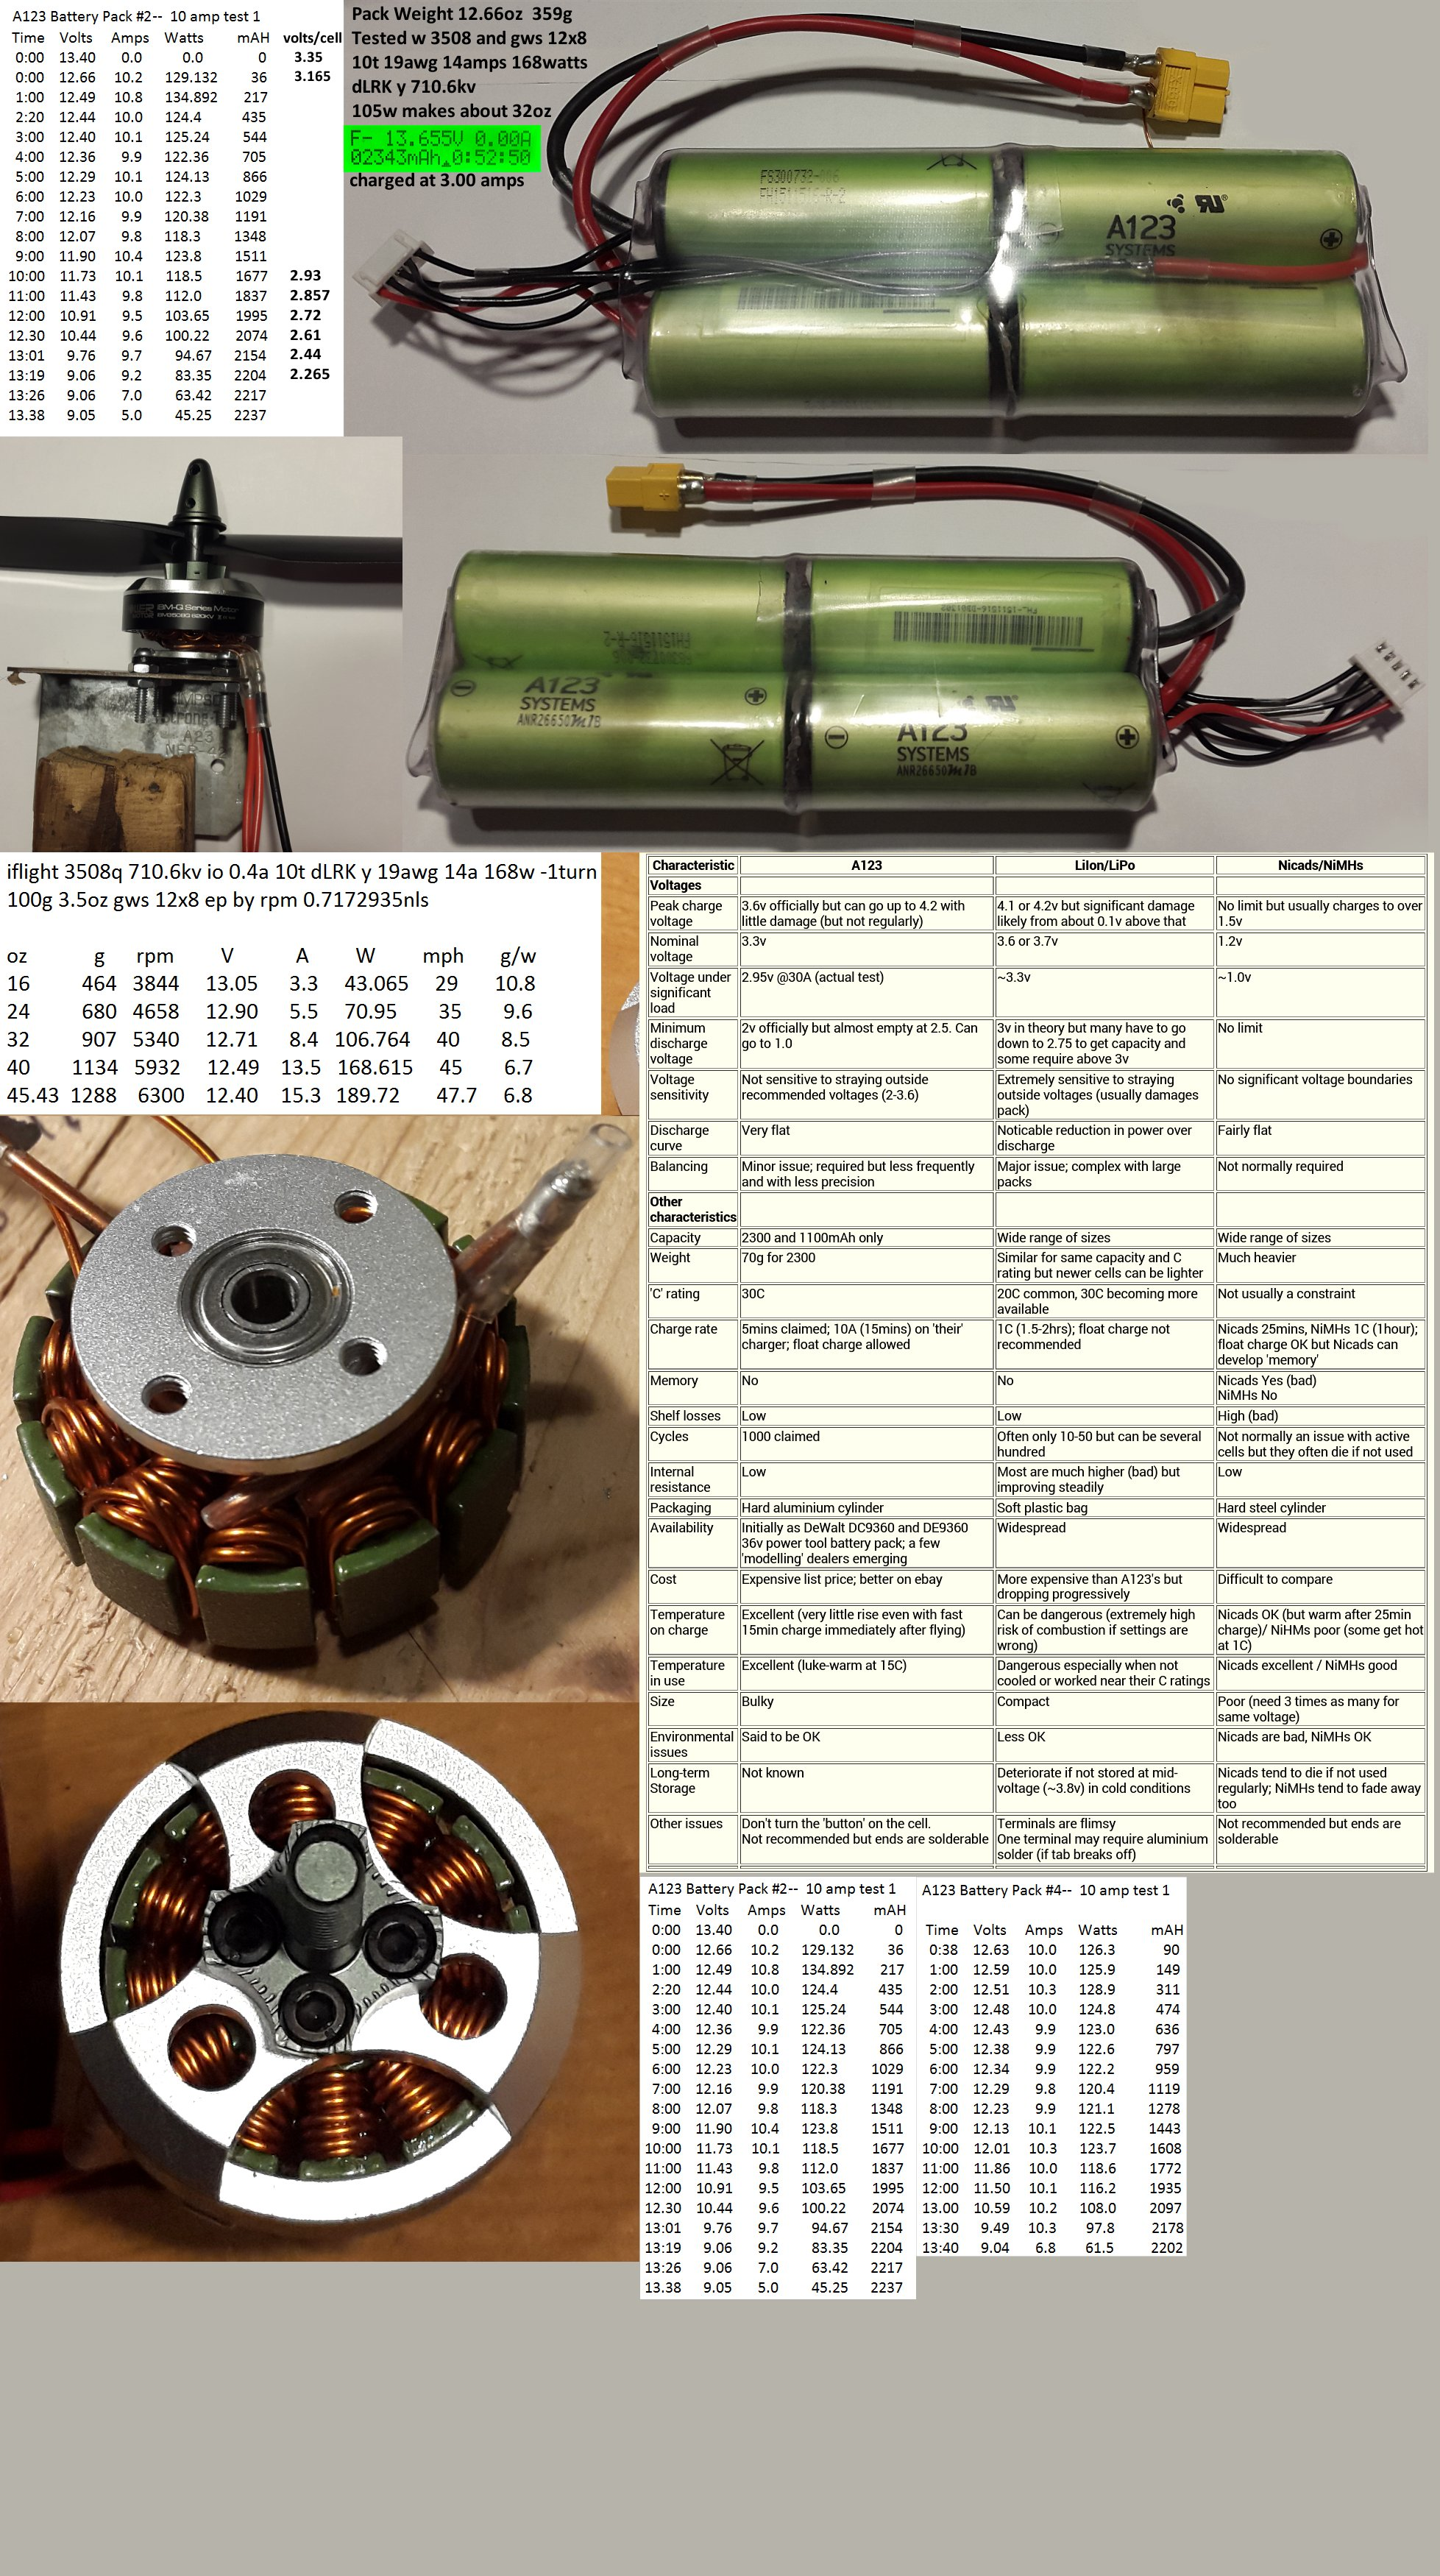 A123 Battery Pack#2 & #4-- 10 amp test pictures6--a123chart 3 small - Copy.jpg